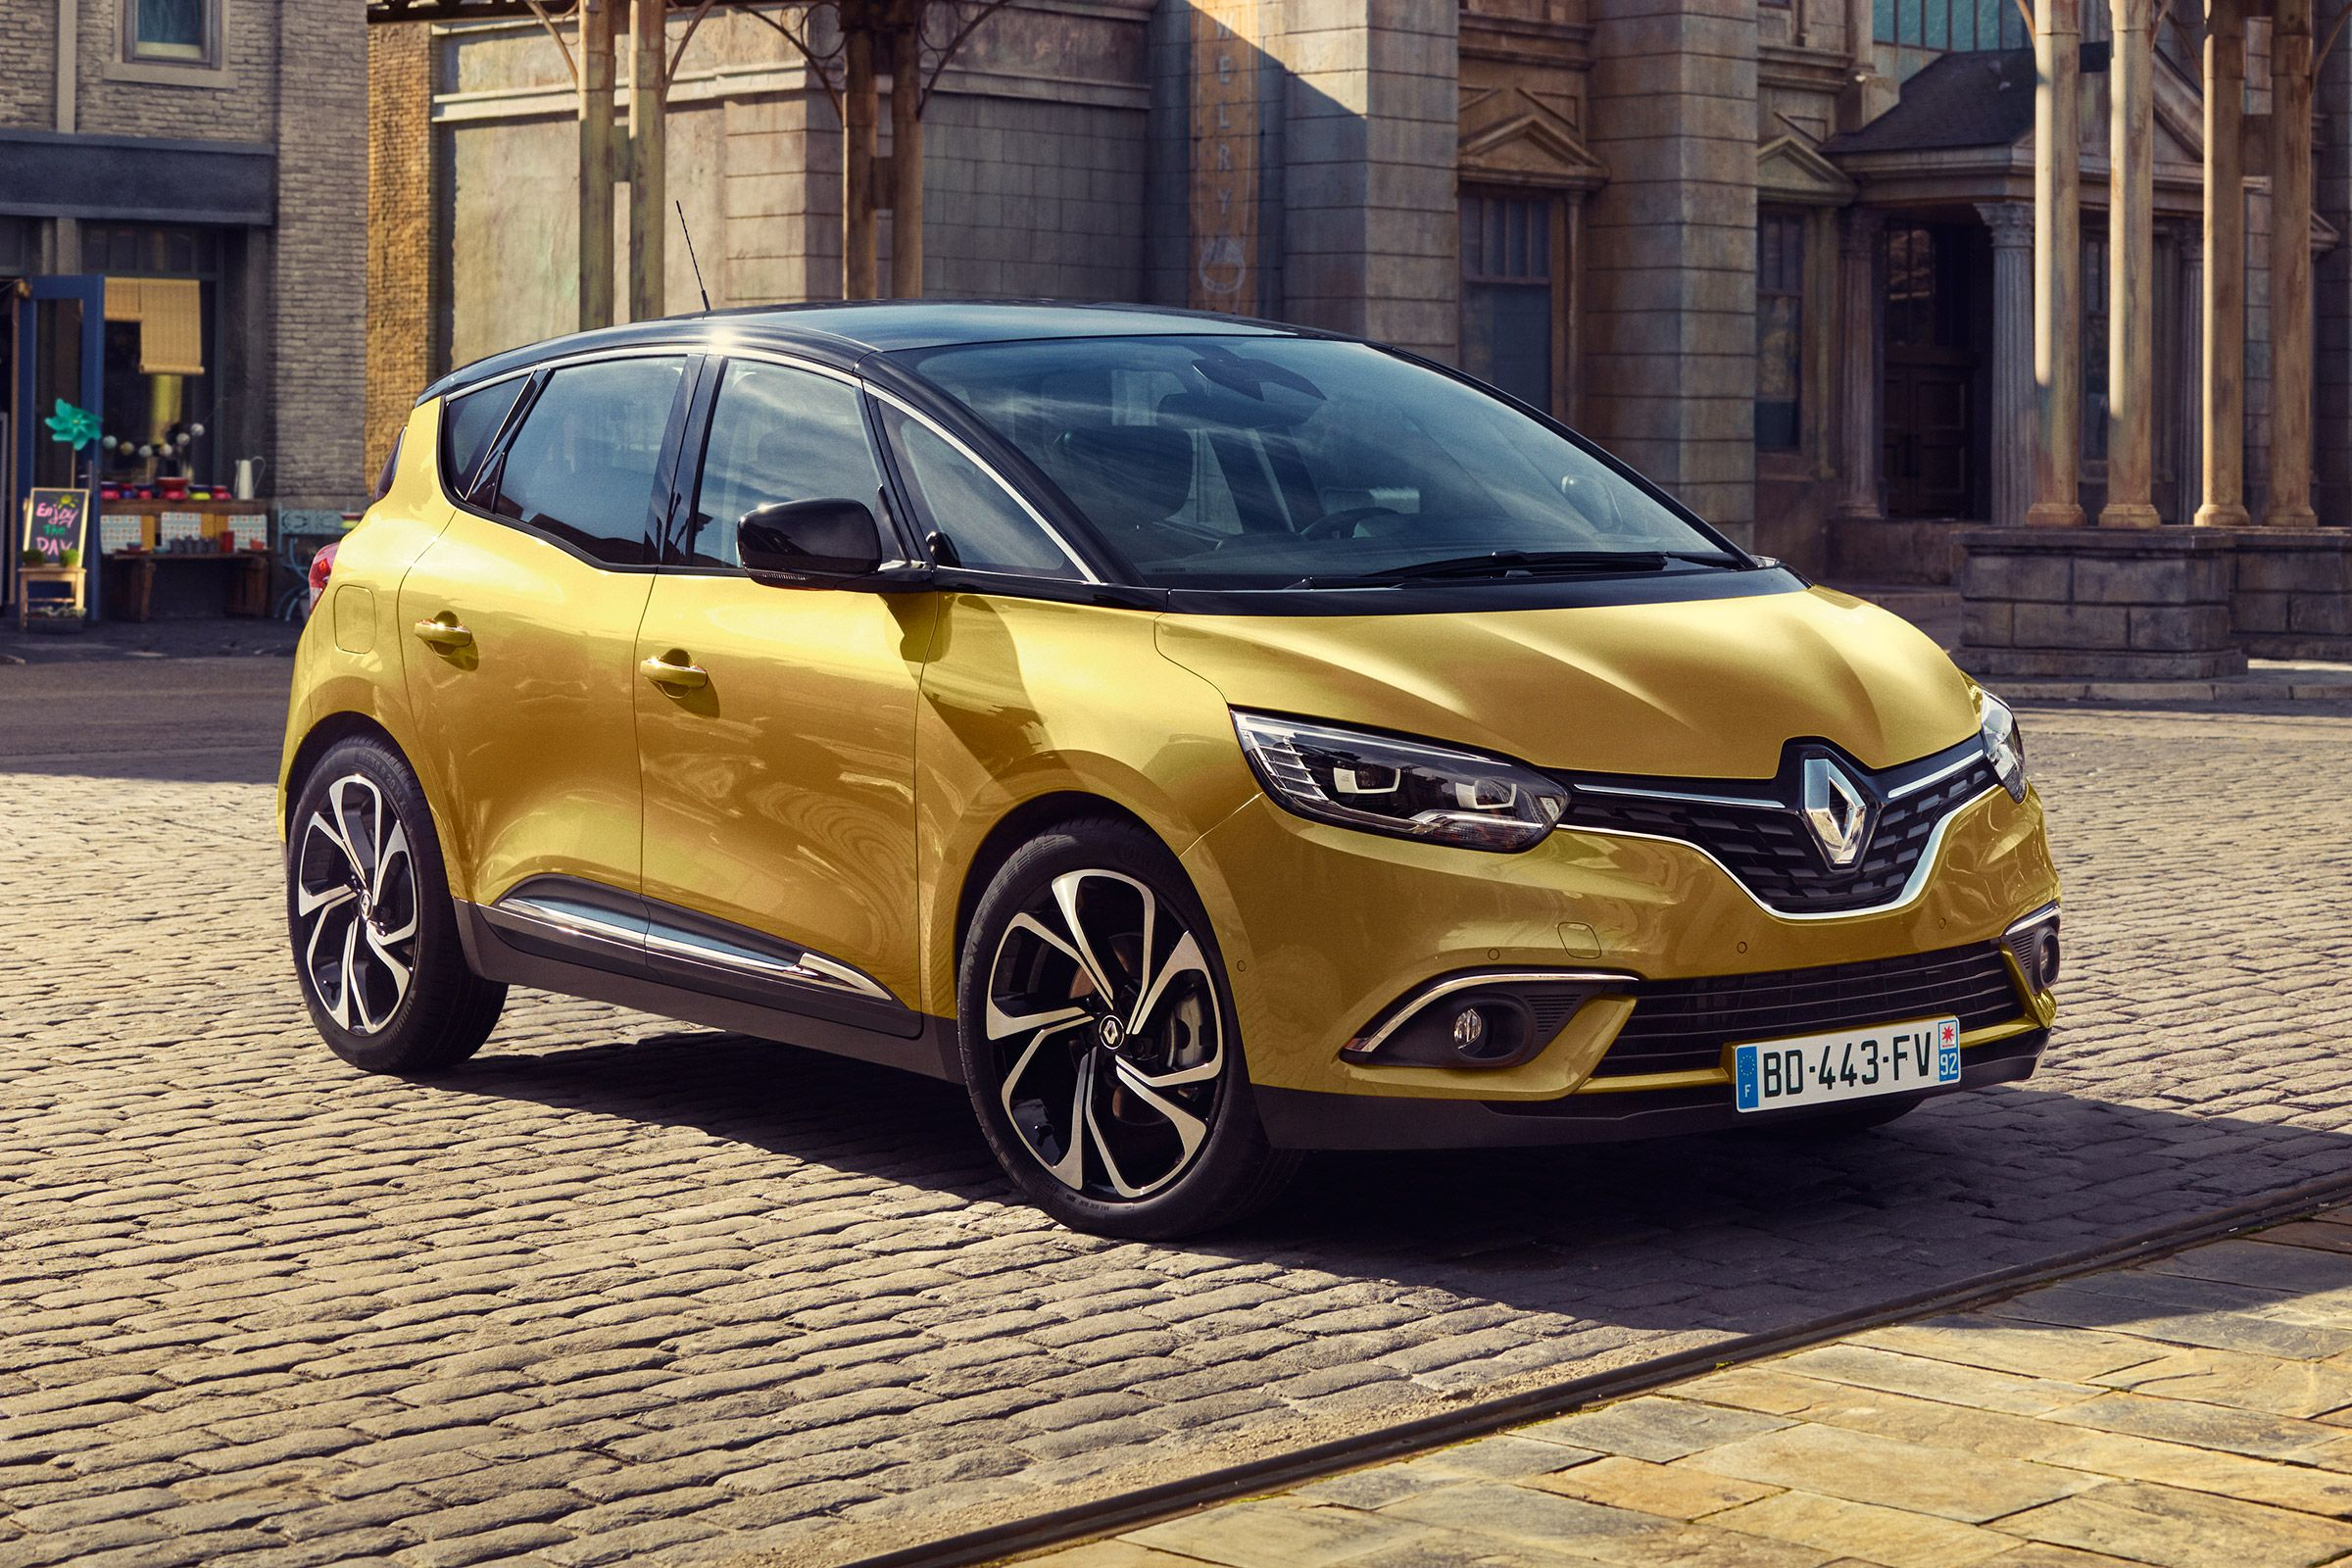 The New 2016 Renault Scenic Is Here Have They Reinvented The Mpv The New Renault Scenic Has A Simple Mission In Life To Make Us Fa Busje Modelauto Geneve